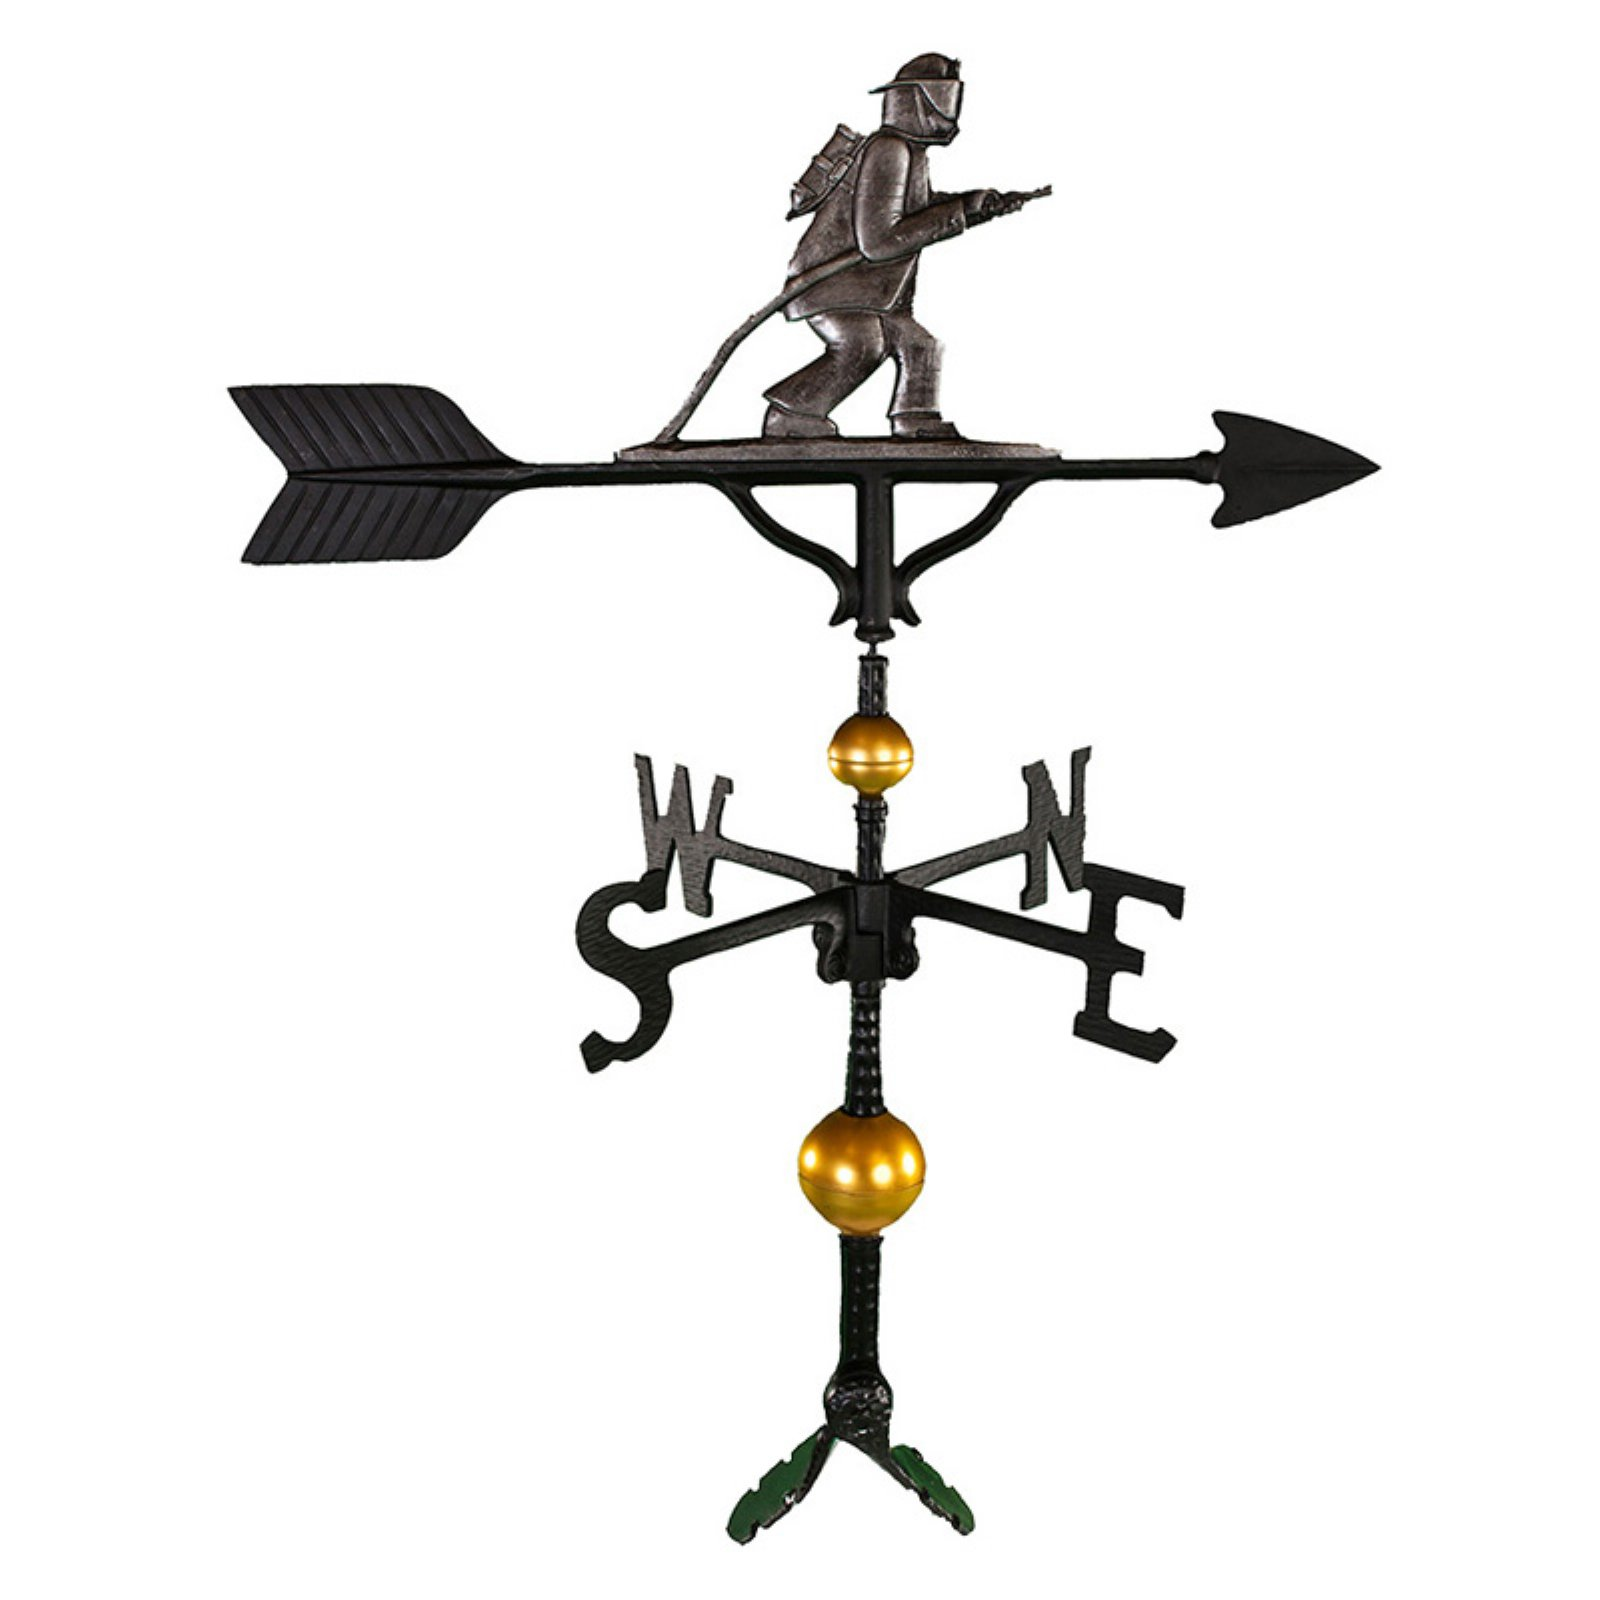 Deluxe Swedish Iron Fireman Weathervane 32 in. by Montague Metal Products